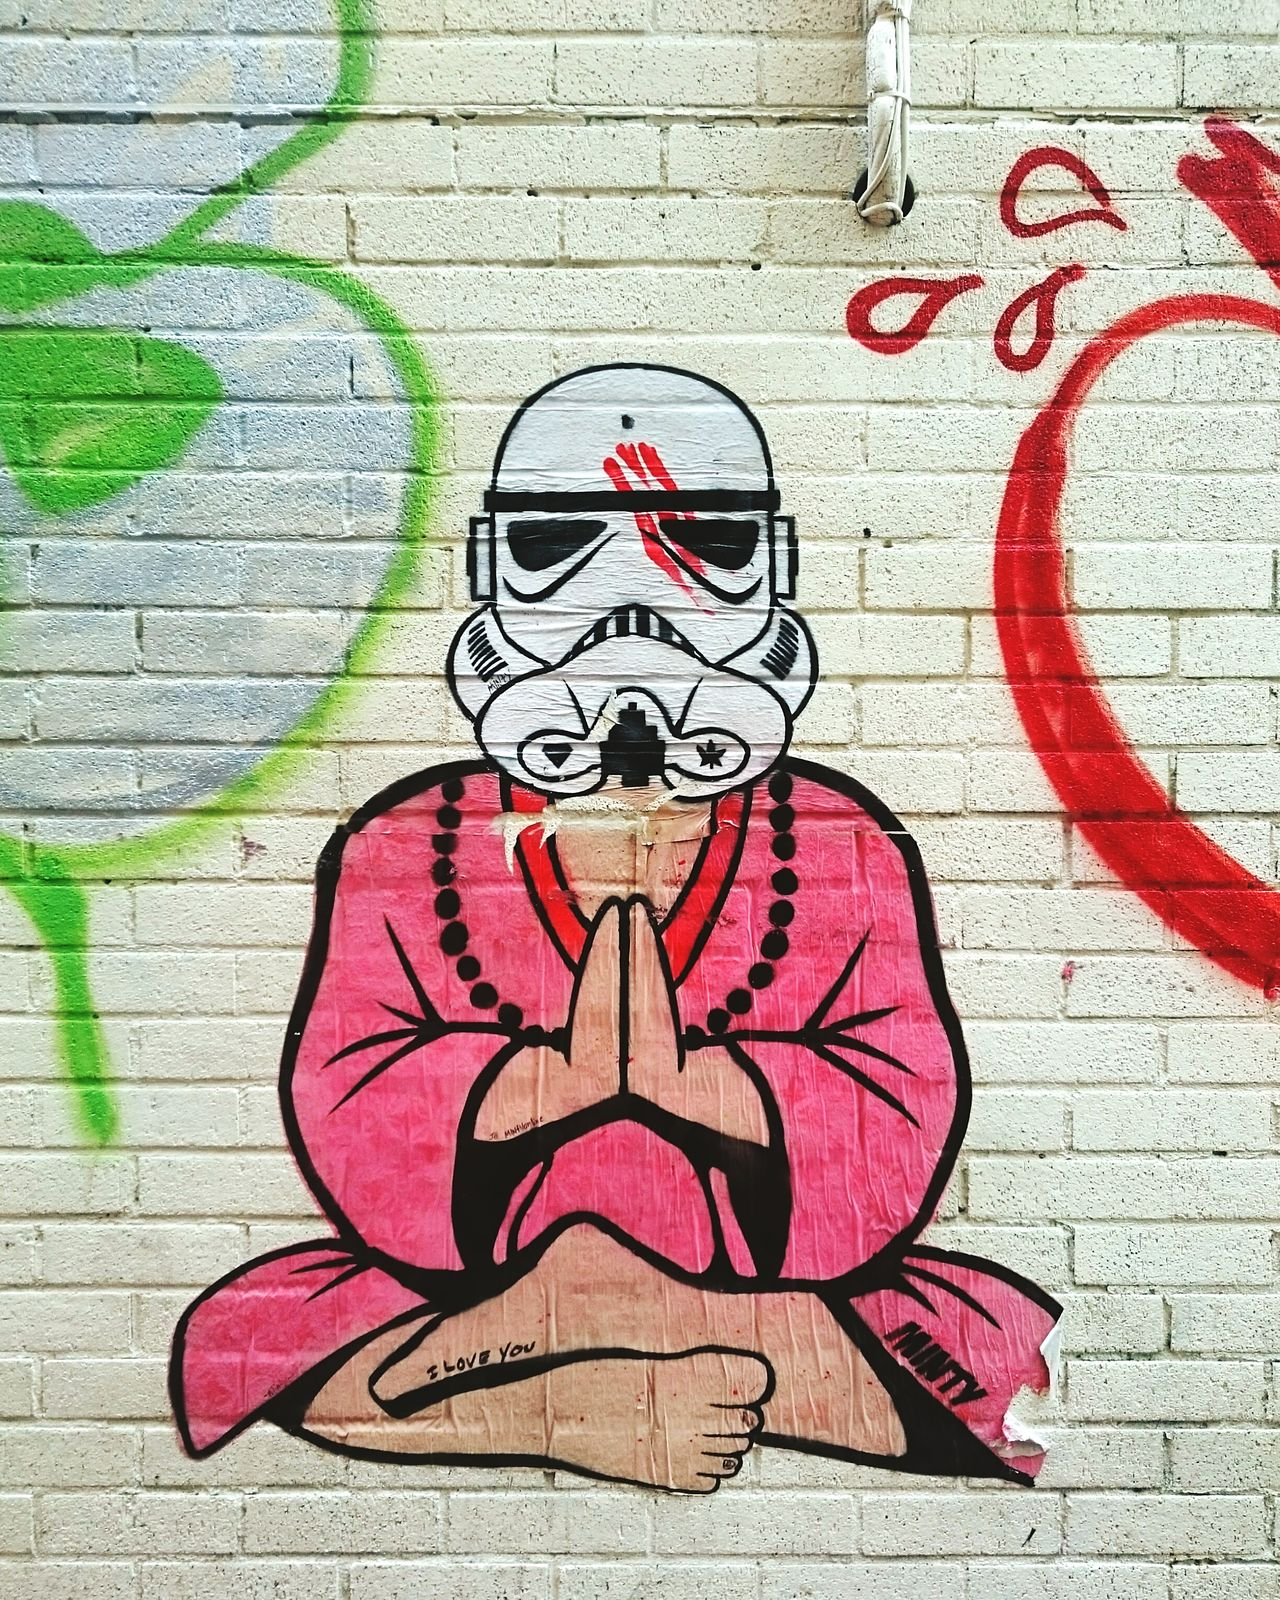 Art Creativity Street Art Graffiti Mural Lines, Shapes And Curves Textures And Surfaces Urbanphotography Streetphotography Amusement  Brighton Wheatpaste Stencil Art Multi Colored Spraypaint Freshness Wall - Building Feature Graphic Urban Landscape Brighton Starwars Stormtrooper Buddha